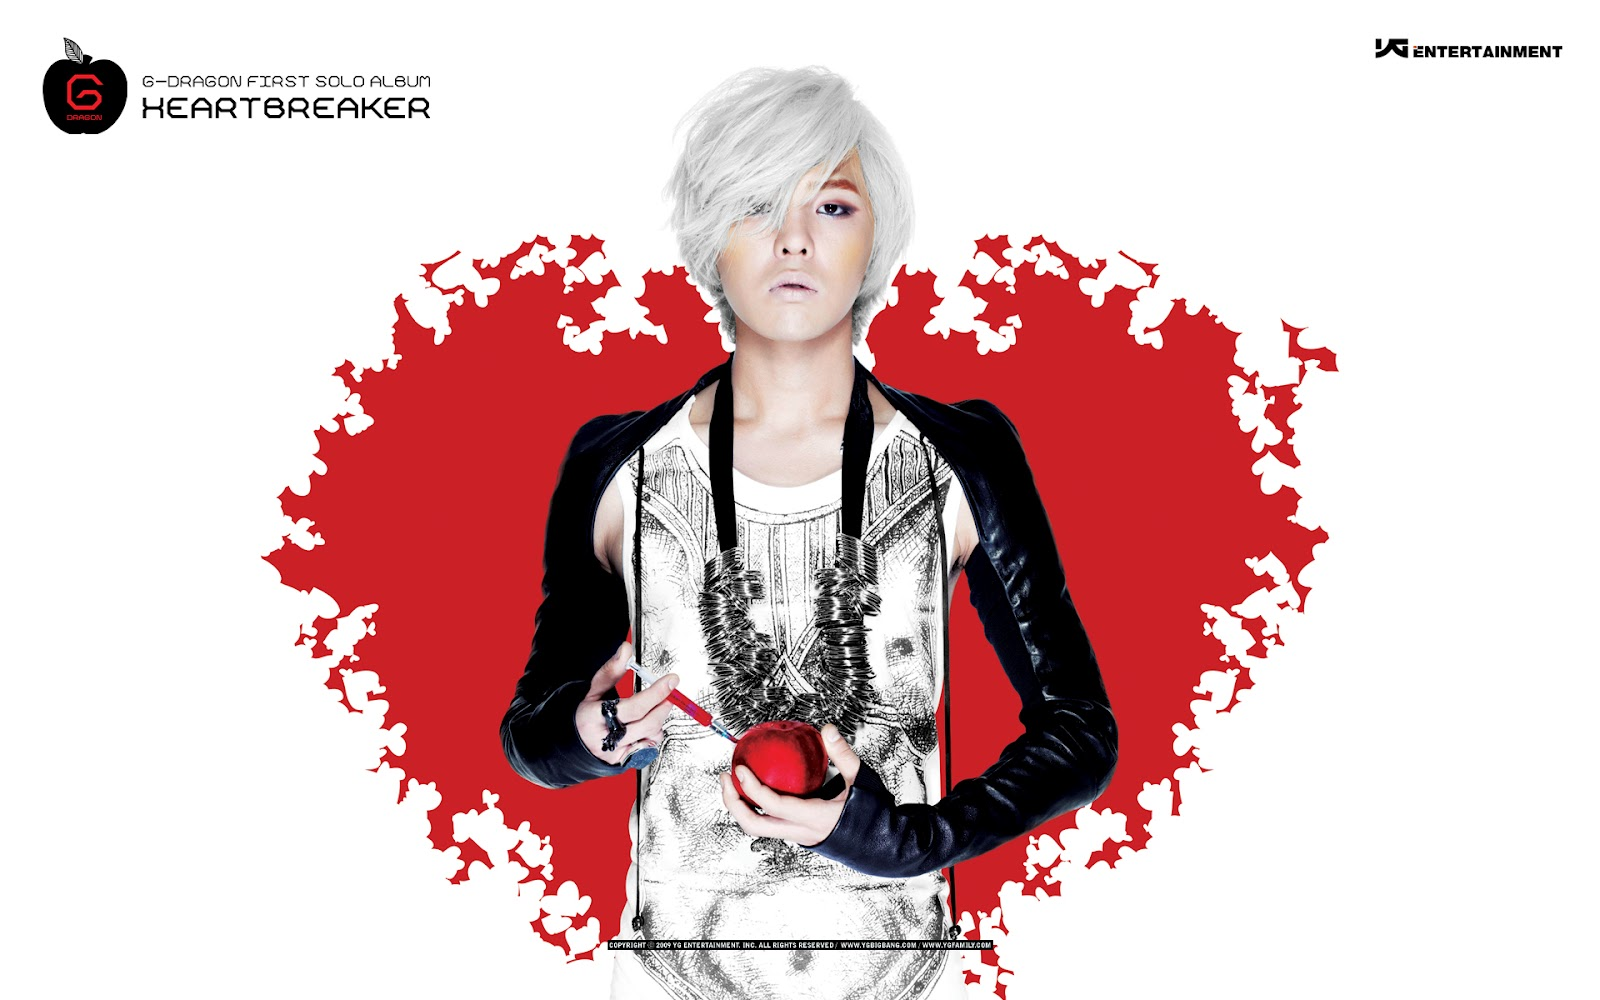 [Lyric] Heartbreaker by G Dragon [Romanization 1600x1000